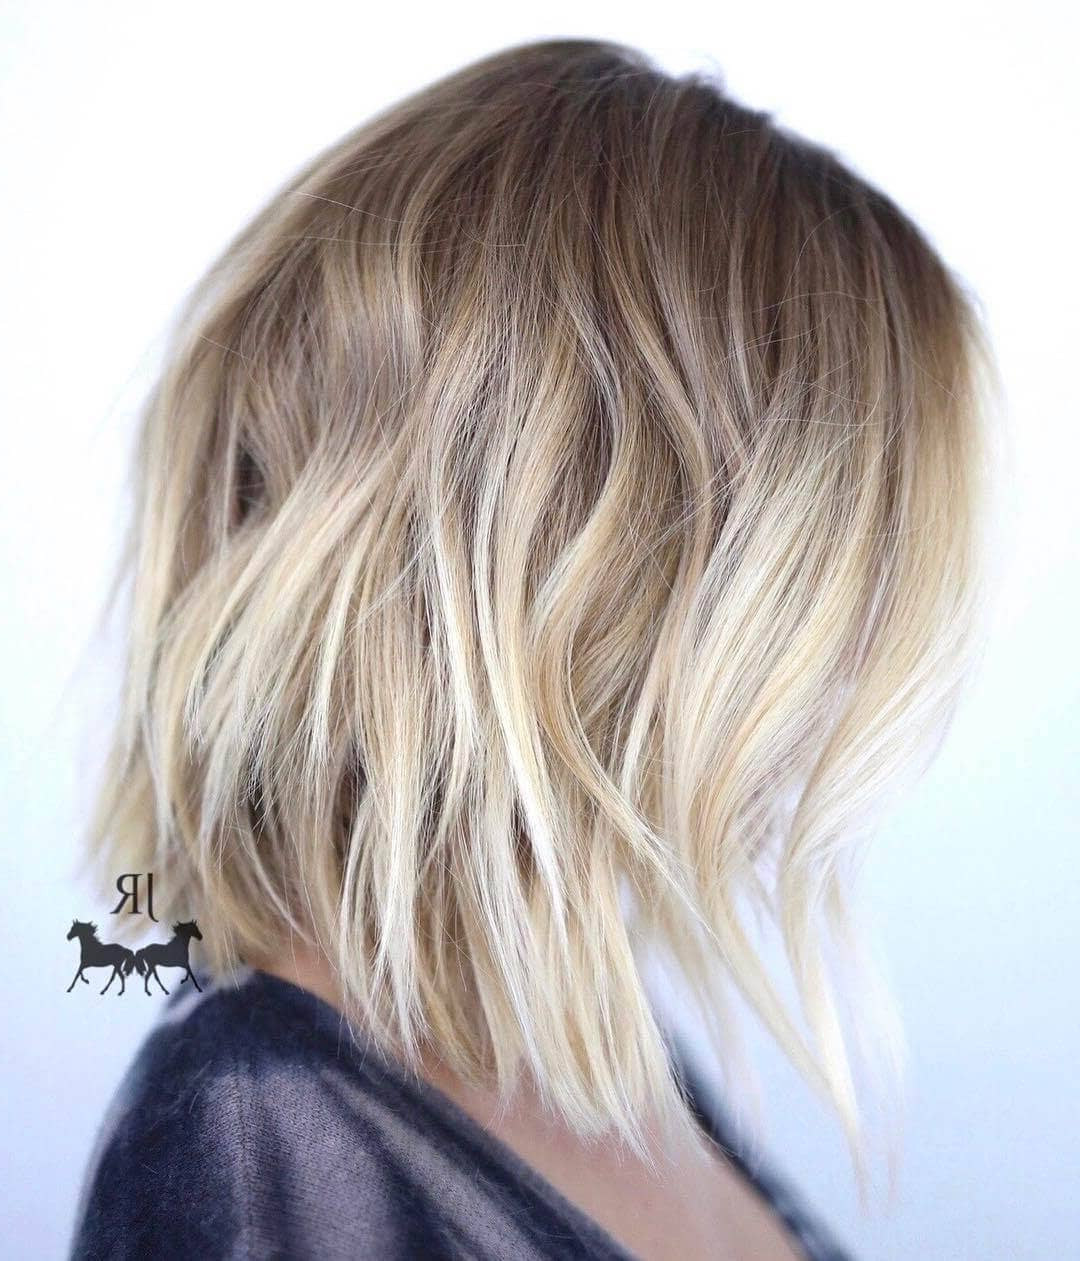 50 Fresh Short Blonde Hair Ideas To Update Your Style In 2018 For White Blonde Curly Layered Bob Hairstyles (View 8 of 20)